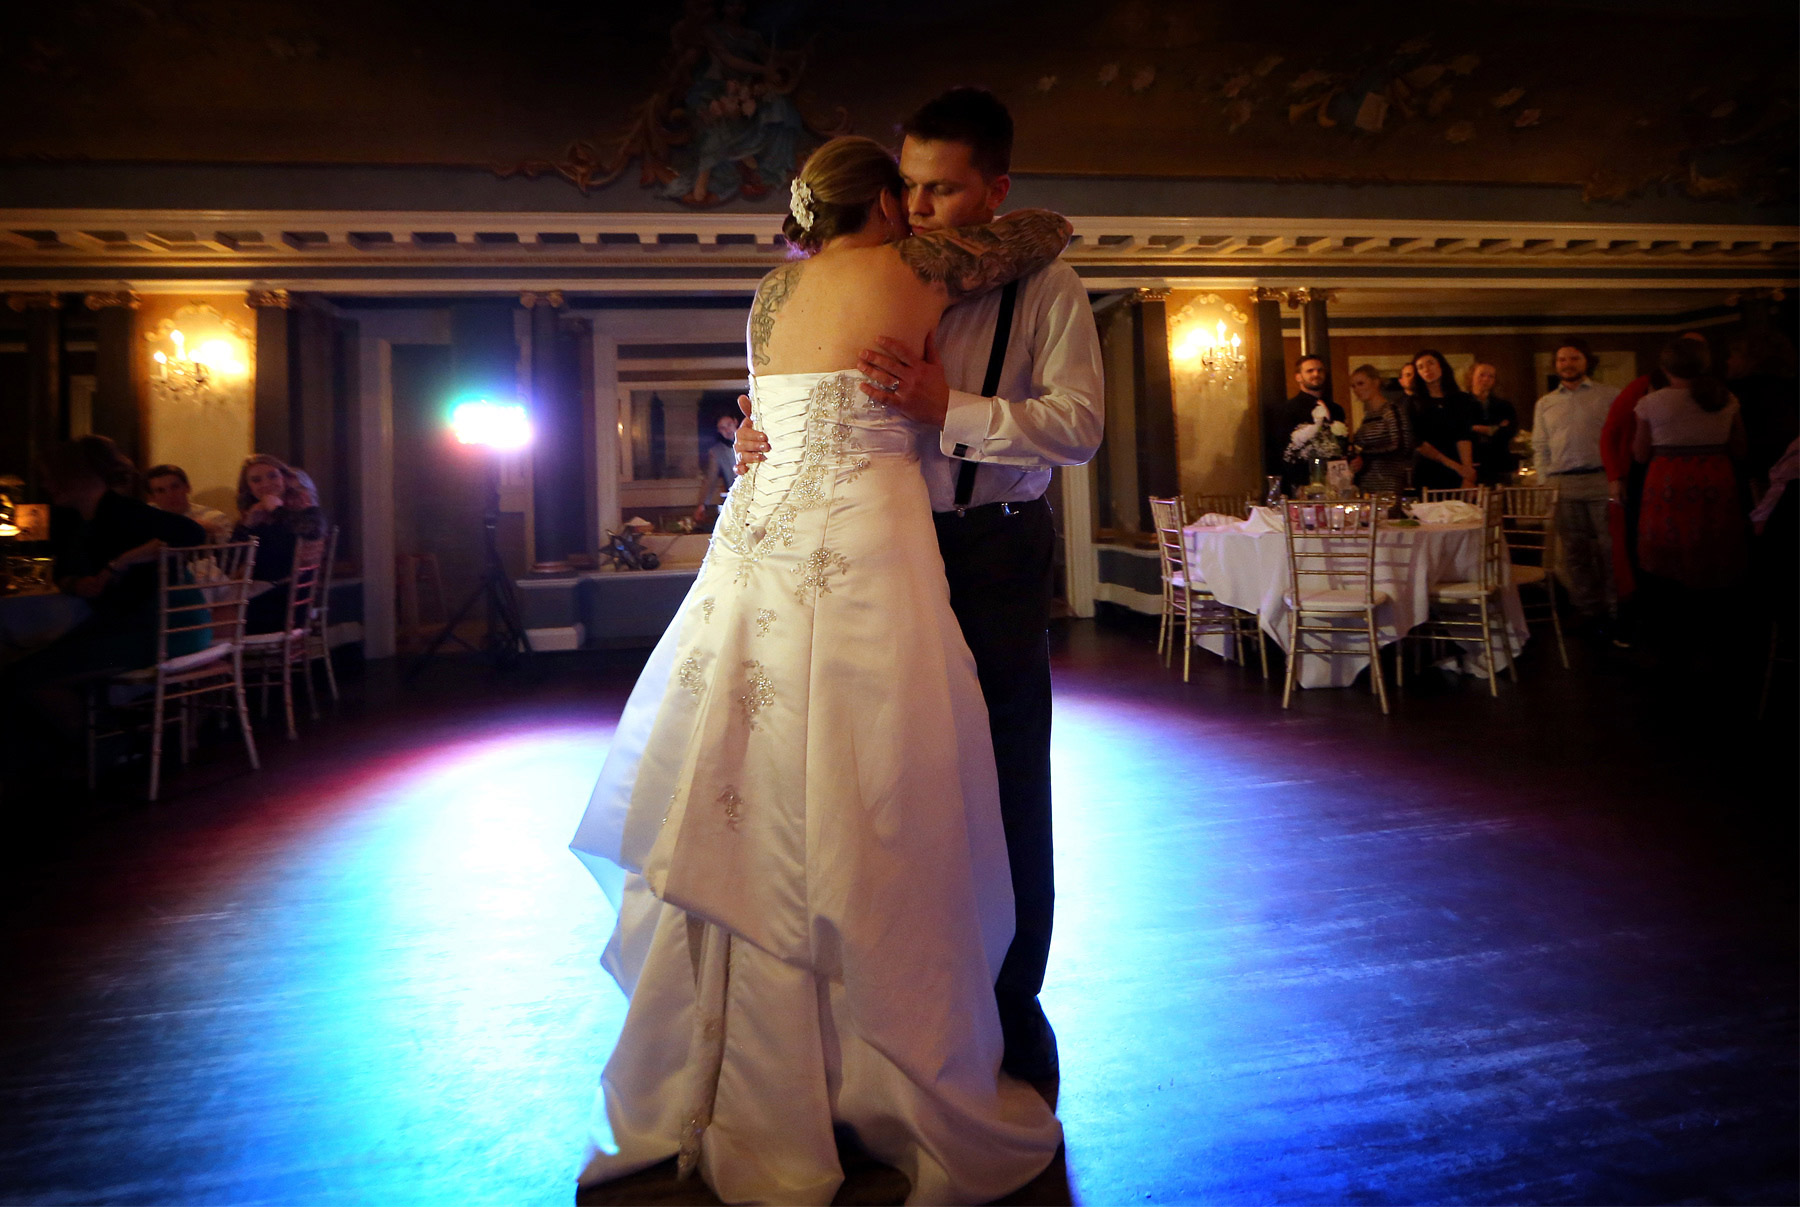 12-Minneapolis-Minnesota-Wedding-Photography-by-Vick-Photography-Semple-Mansion-Reception-First-Dance-Ariel-and-Jared.jpg